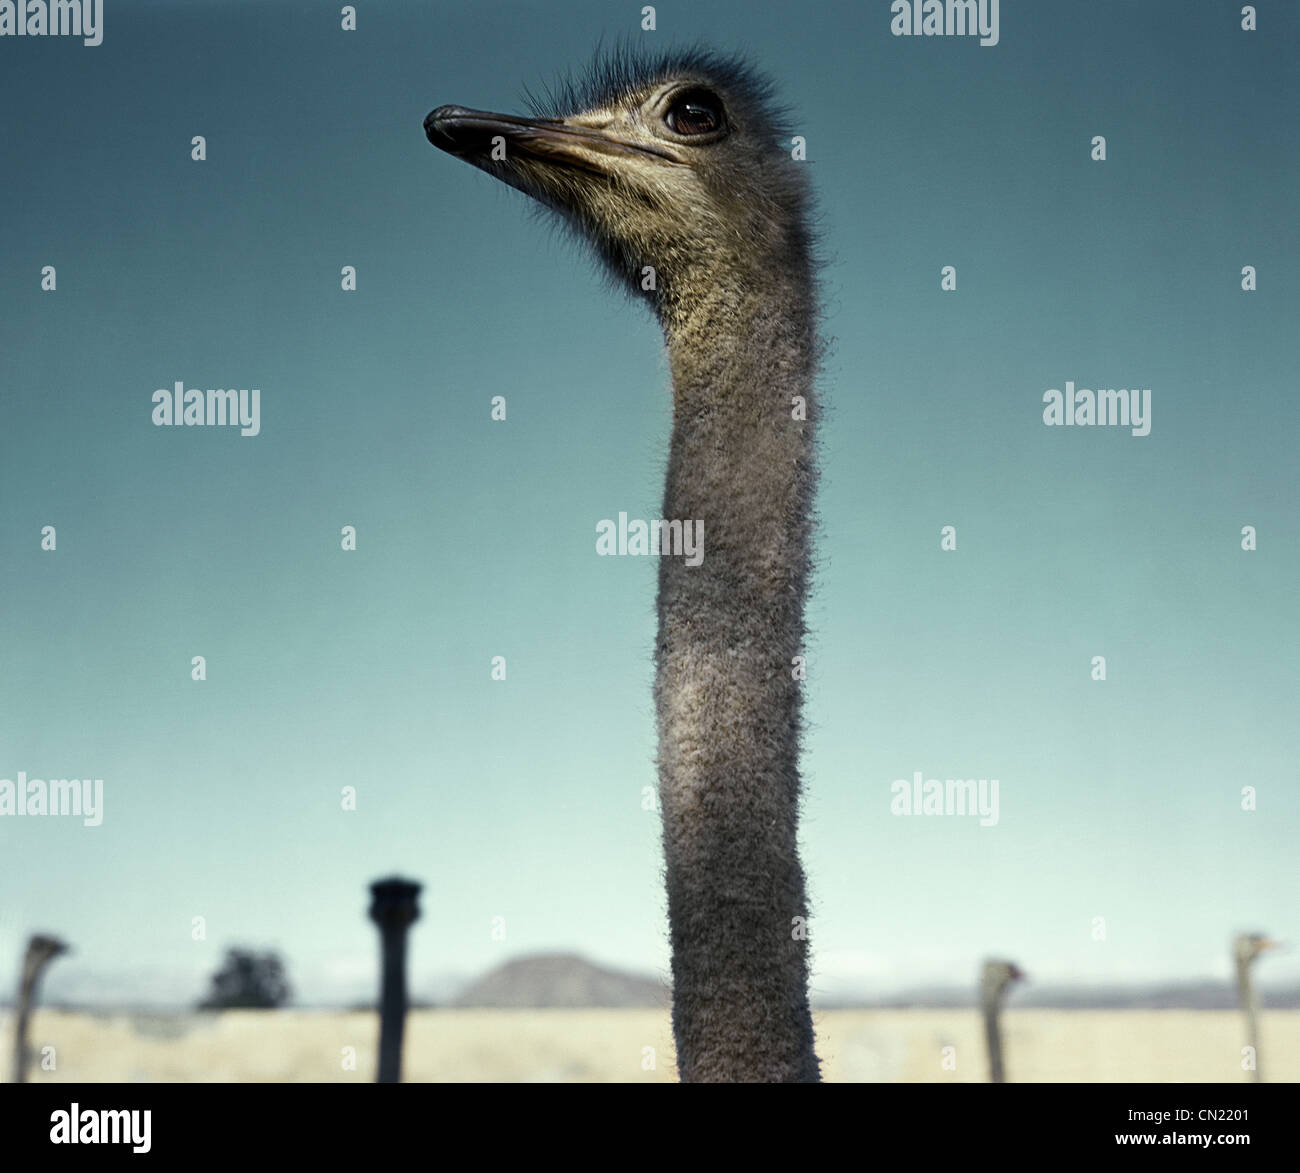 Ostrich in the desert, South Africa - Stock Image